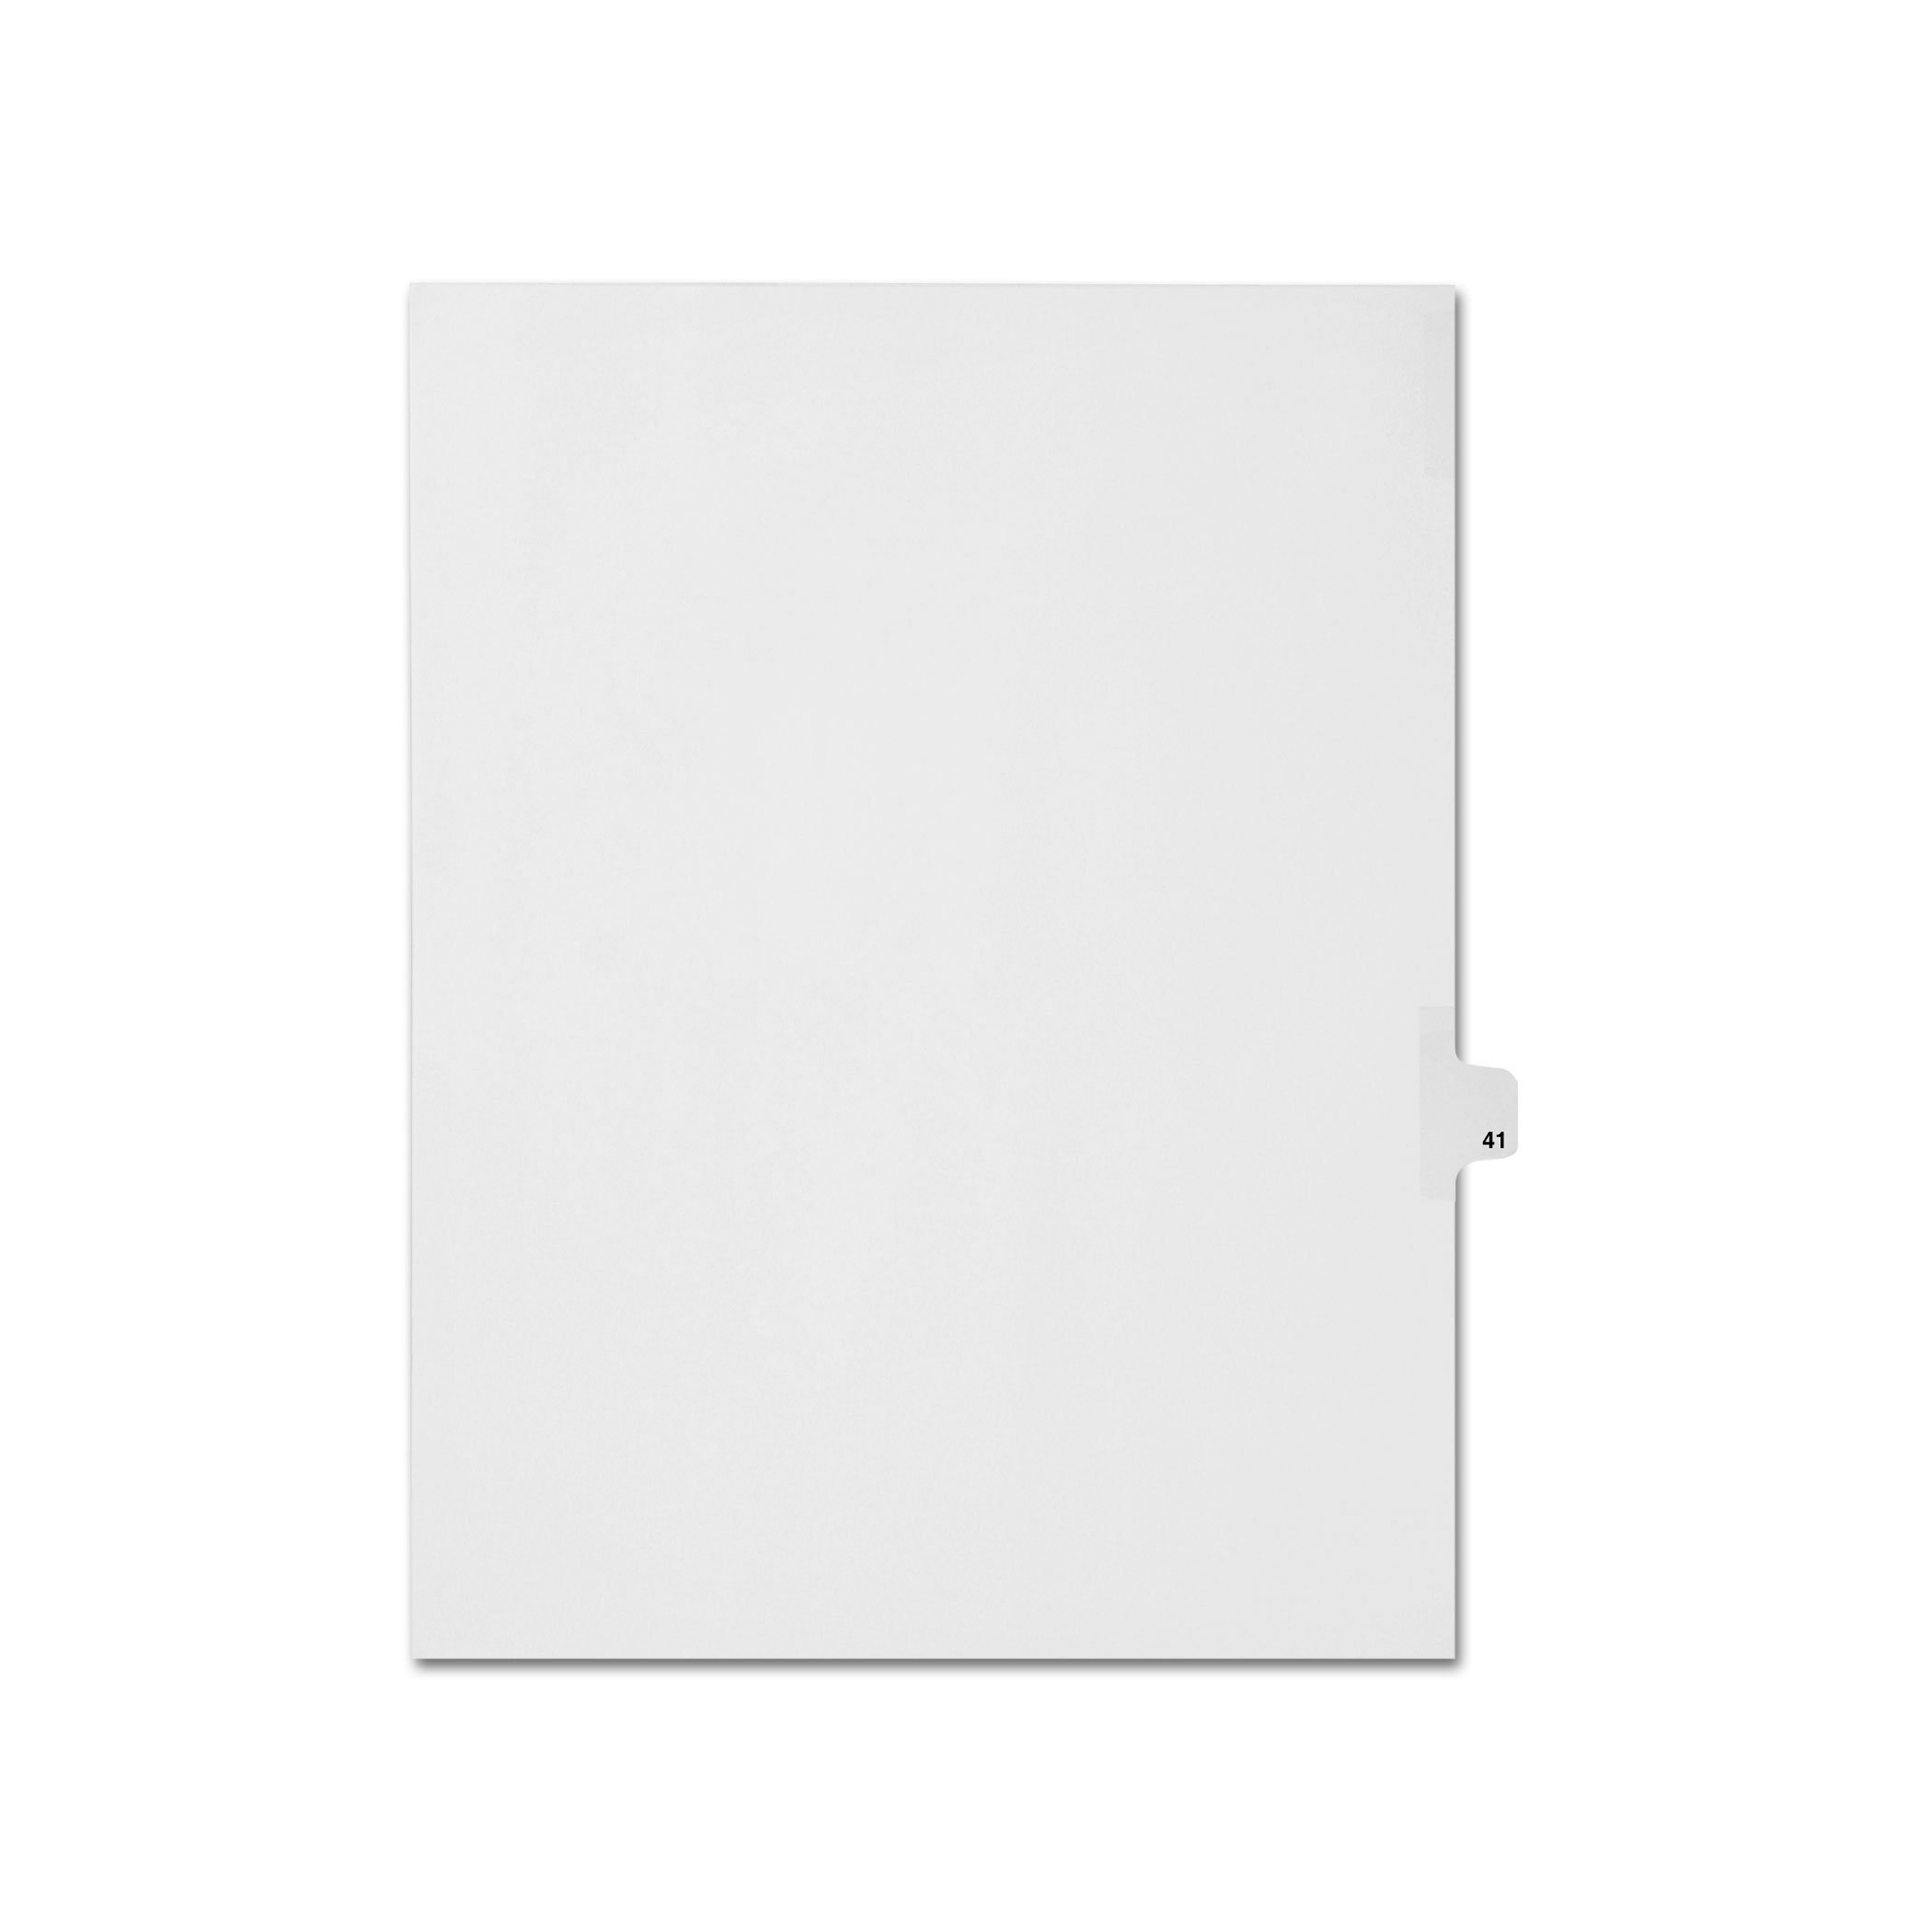 AMZfiling Individual Legal Index Tab Dividers, Compatible with Avery- Number 41, Letter Size, White, Side Tabs, Position 16 (25 Sheets/pkg)